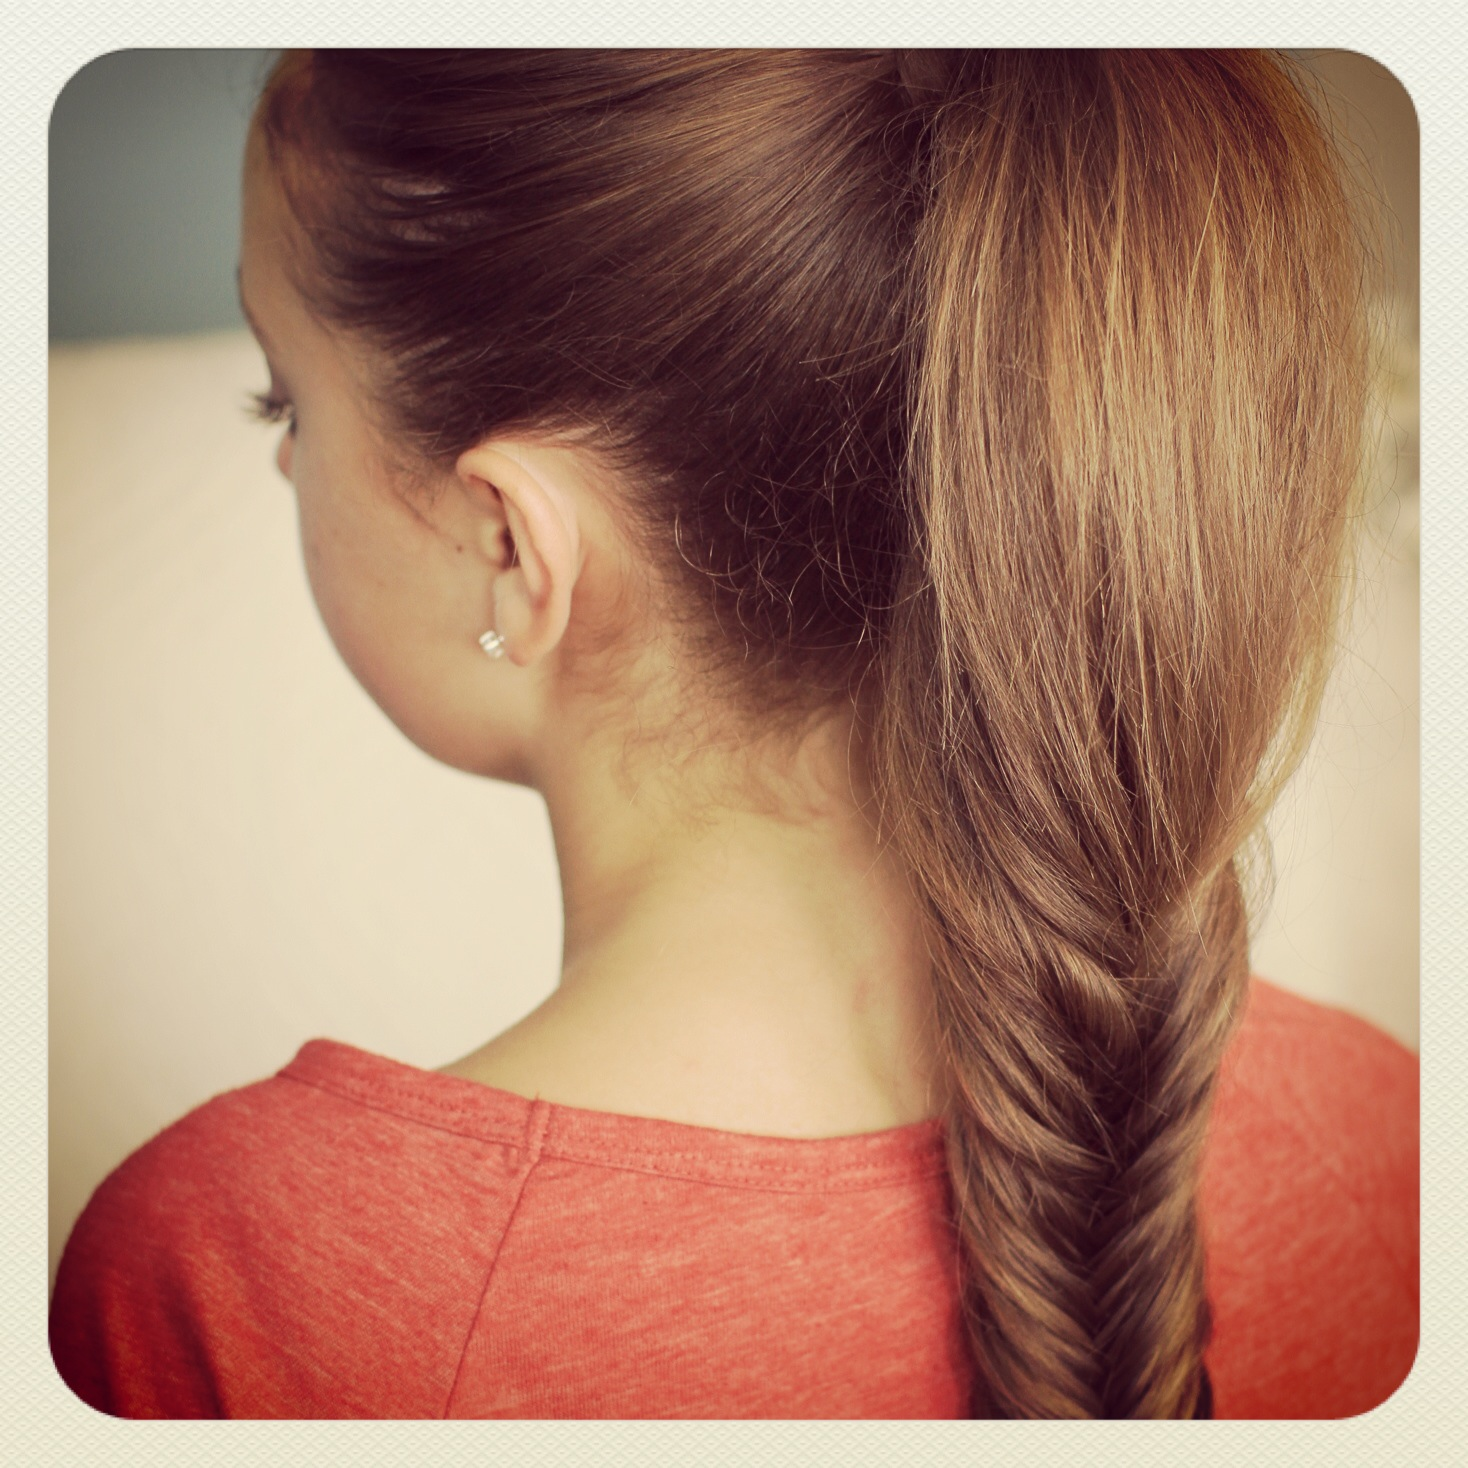 Fluffy fishtail braid hairstyles for long hair cute girls hairstyles fluffy fishtail braid cute braids the perfect diy aspect of this hairstyle solutioingenieria Choice Image